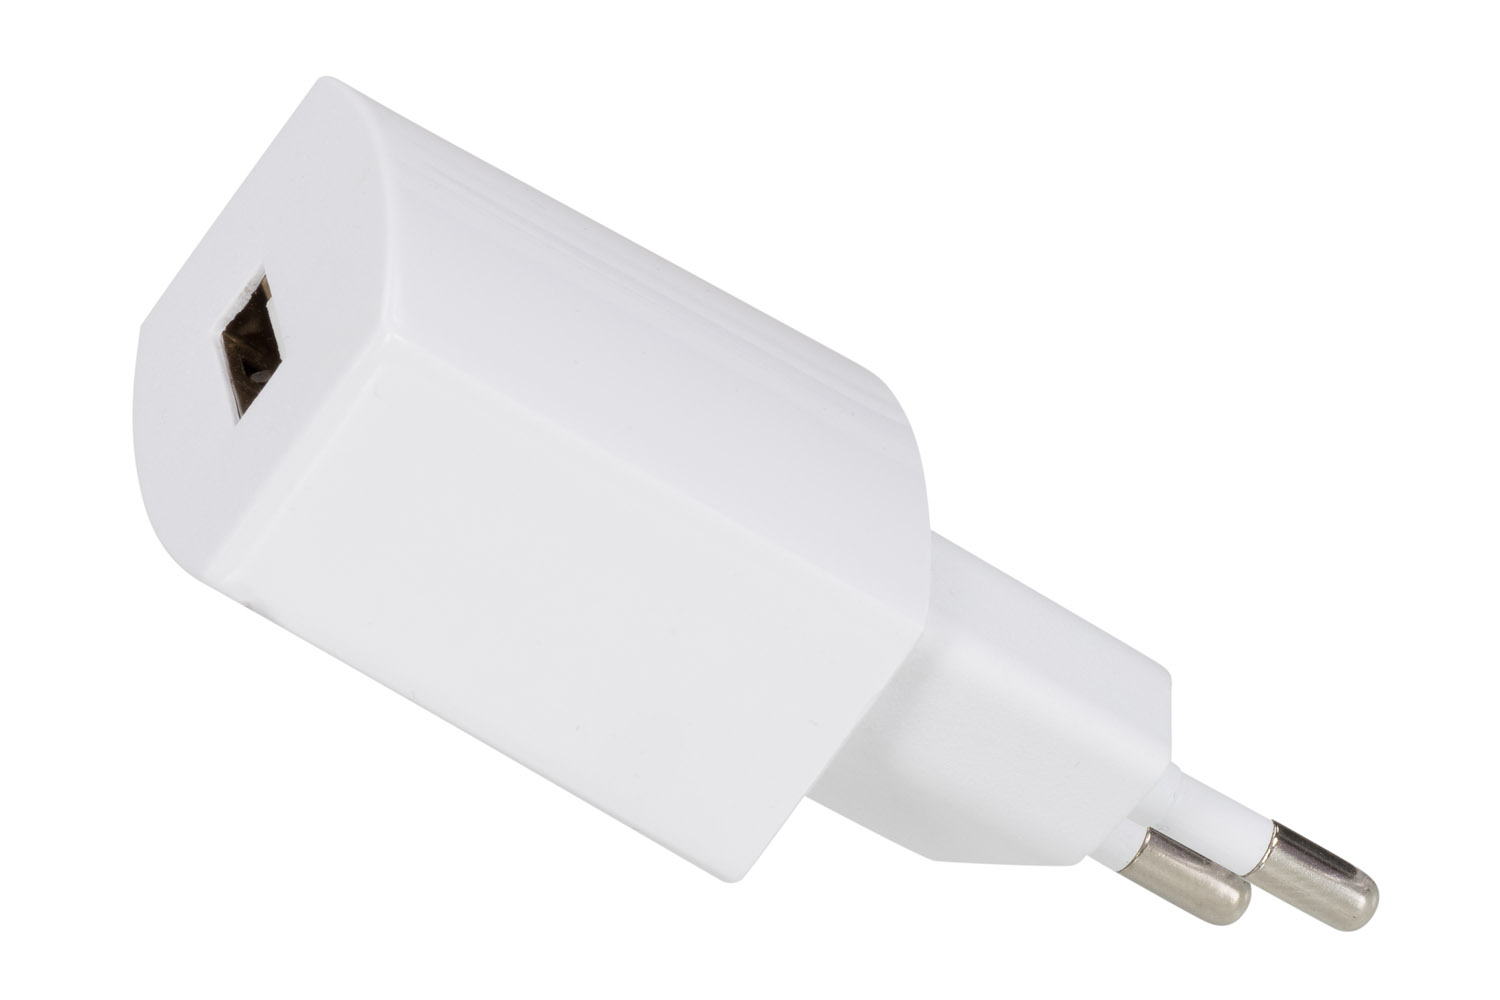 axiwi-cr-009-usb-1-poort-lader